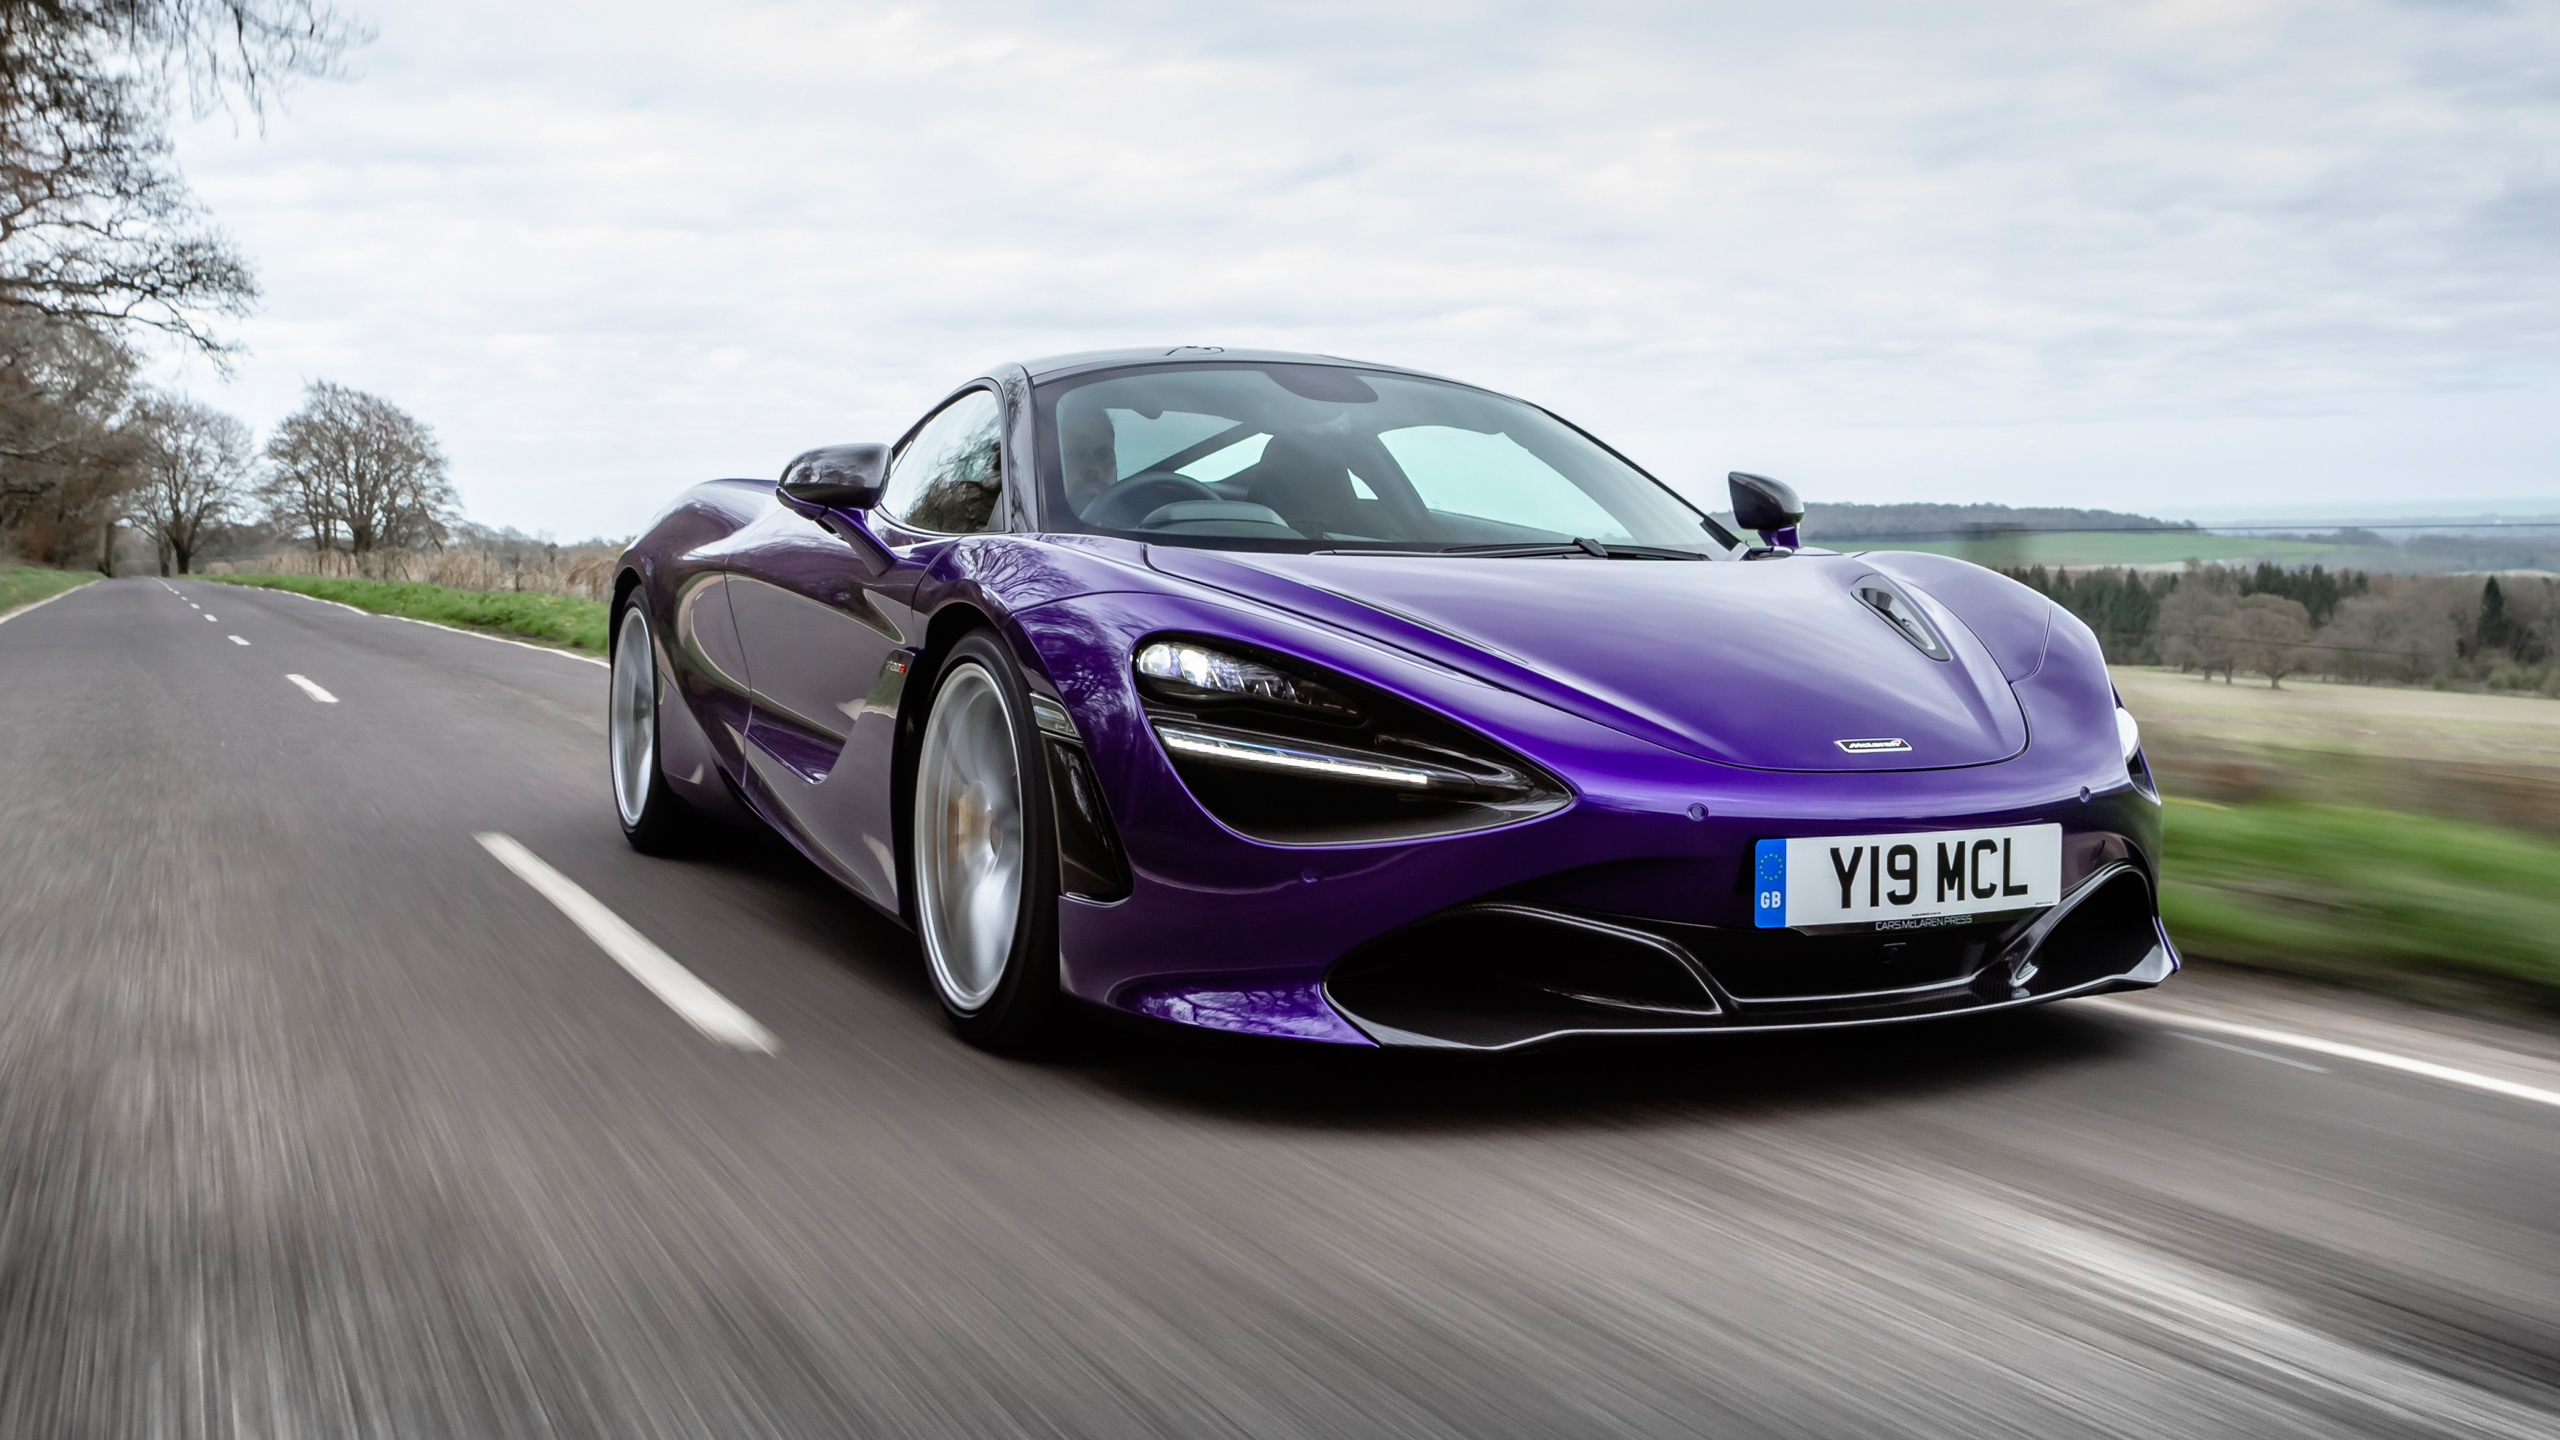 Mclaren 720s Coupe 2018 Wallpapers Hd Wallpapers Id 24005